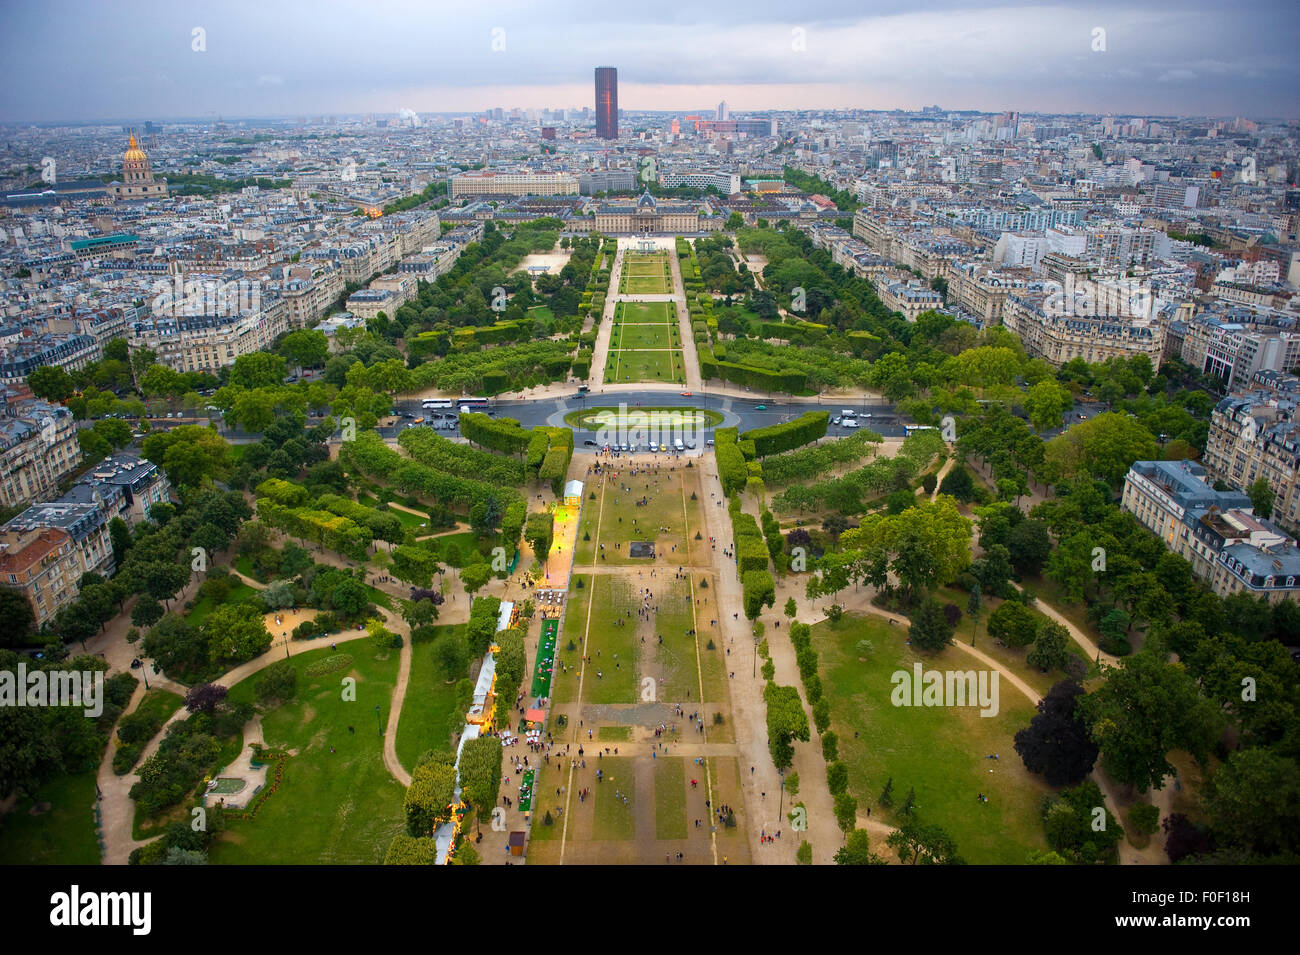 View from the Eiffel Tower over Champ de Mars in Paris Stock Photo